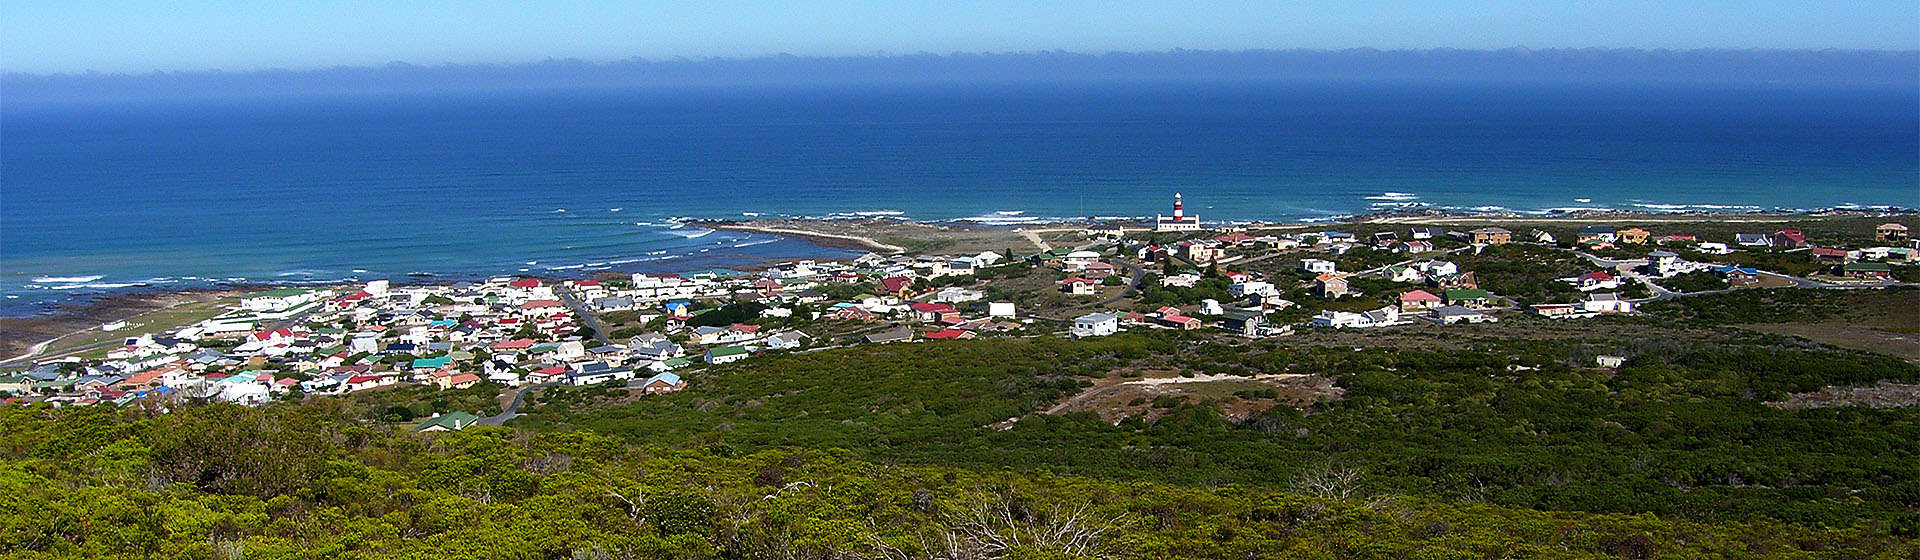 Cape Agulhas The Tip of Africa